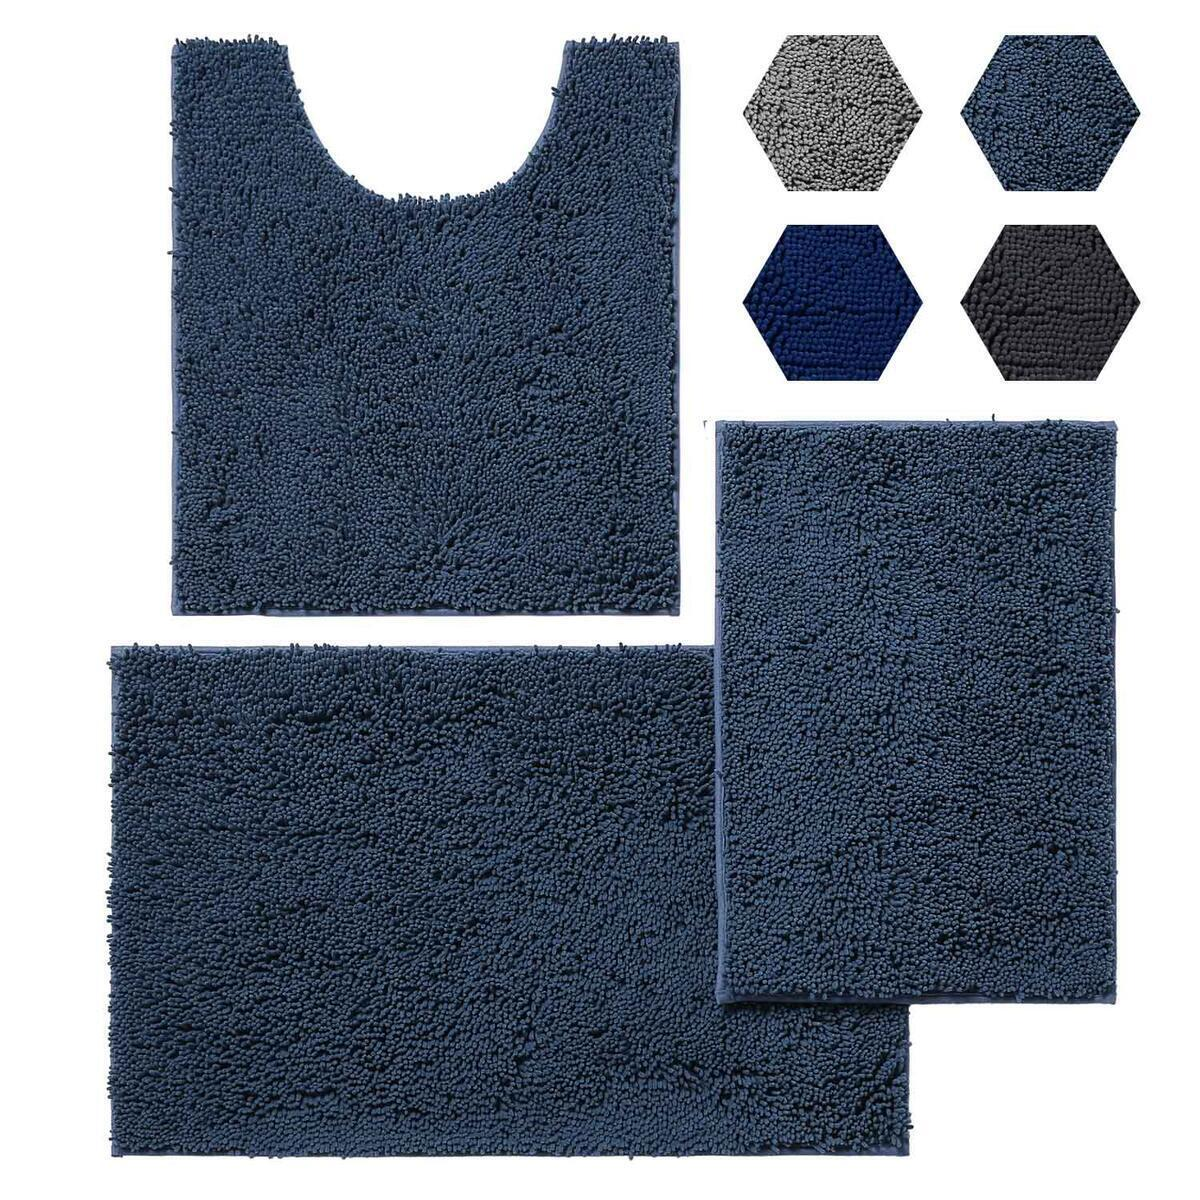 KINMEGO 3 Pieces Bathroom Rugs Set, Super Absorbent Luxury Shaggy Chenille Bath Mats Set, Durable Soft Bath Rugs Non Slip Washable for Tub, Shower, Bathroom (3 Pc Set - Style A, Fog Blue)